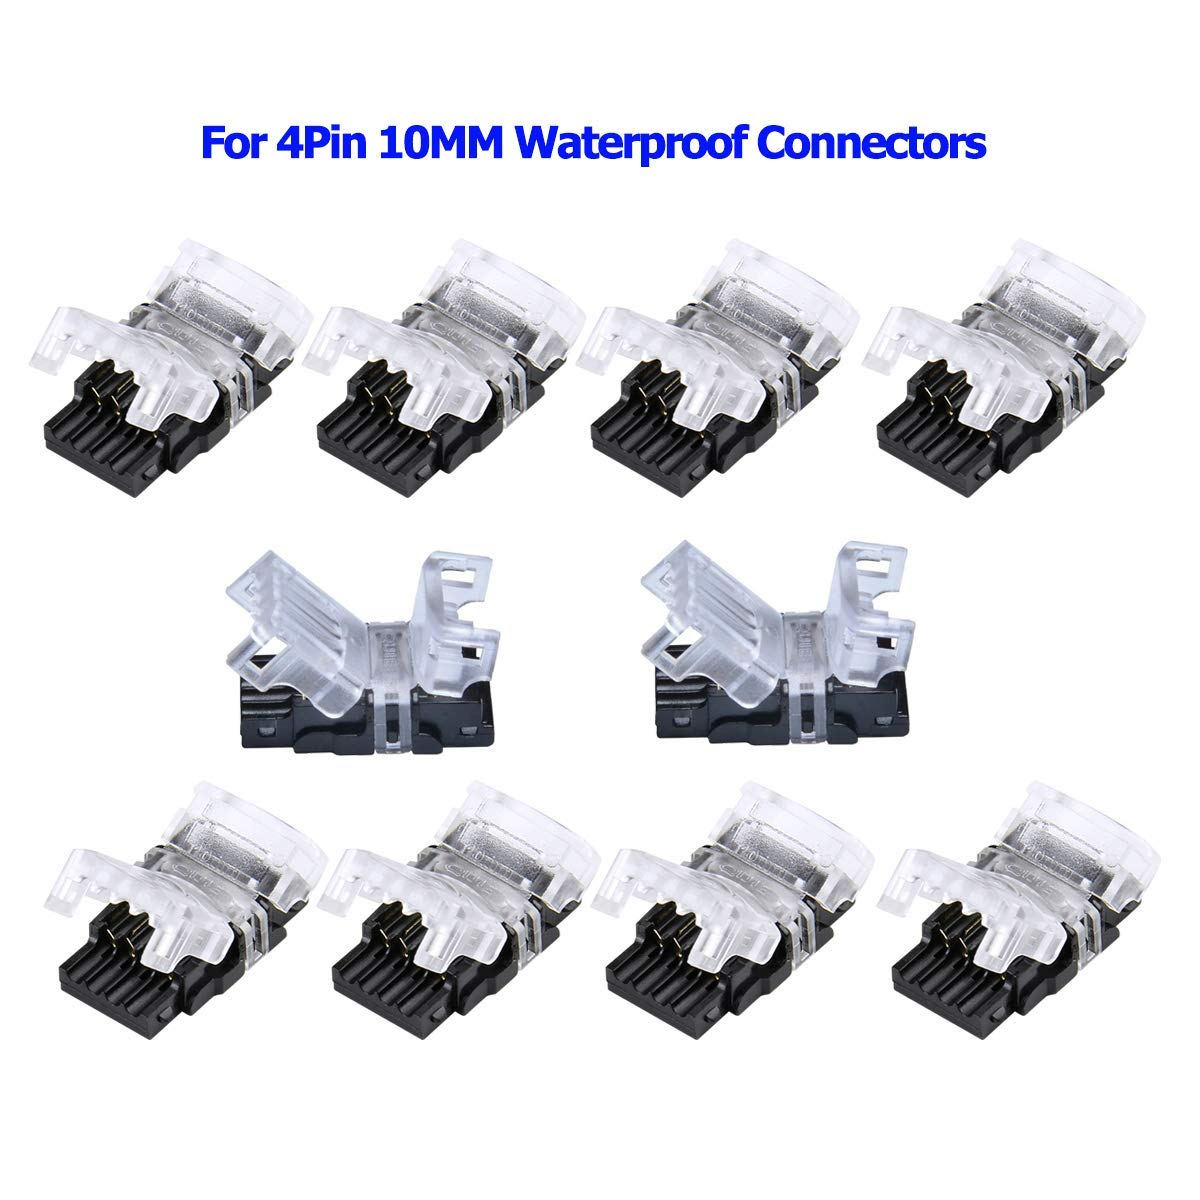 10 Pack 4 Pin Led Connector for Waterproof 10Mm RGB 5050 5630 Led Strip Lights, Strip to Wire Quick Connection Without Stripping Wire